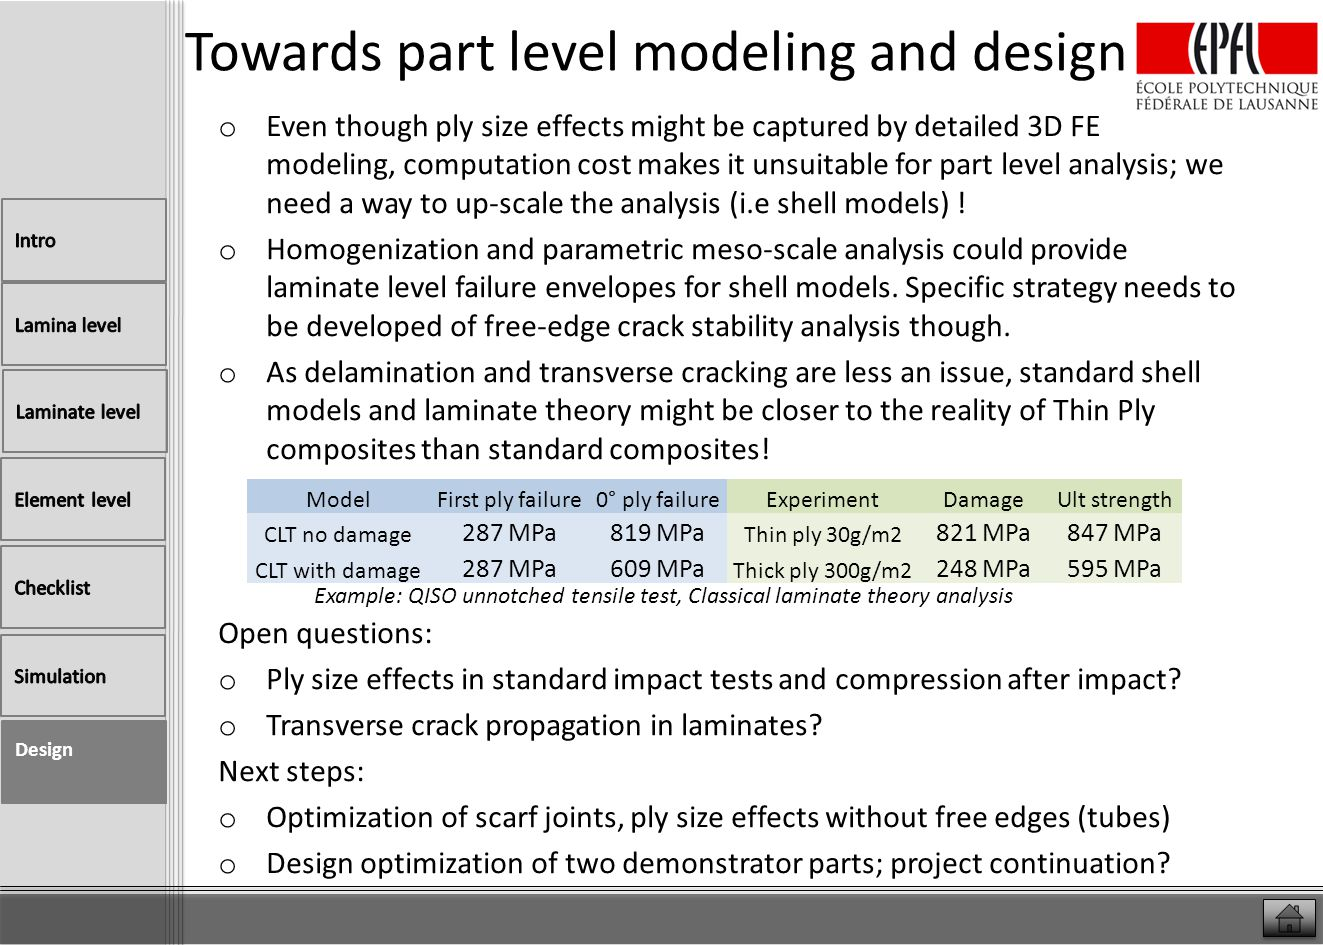 Towards part level modeling and design